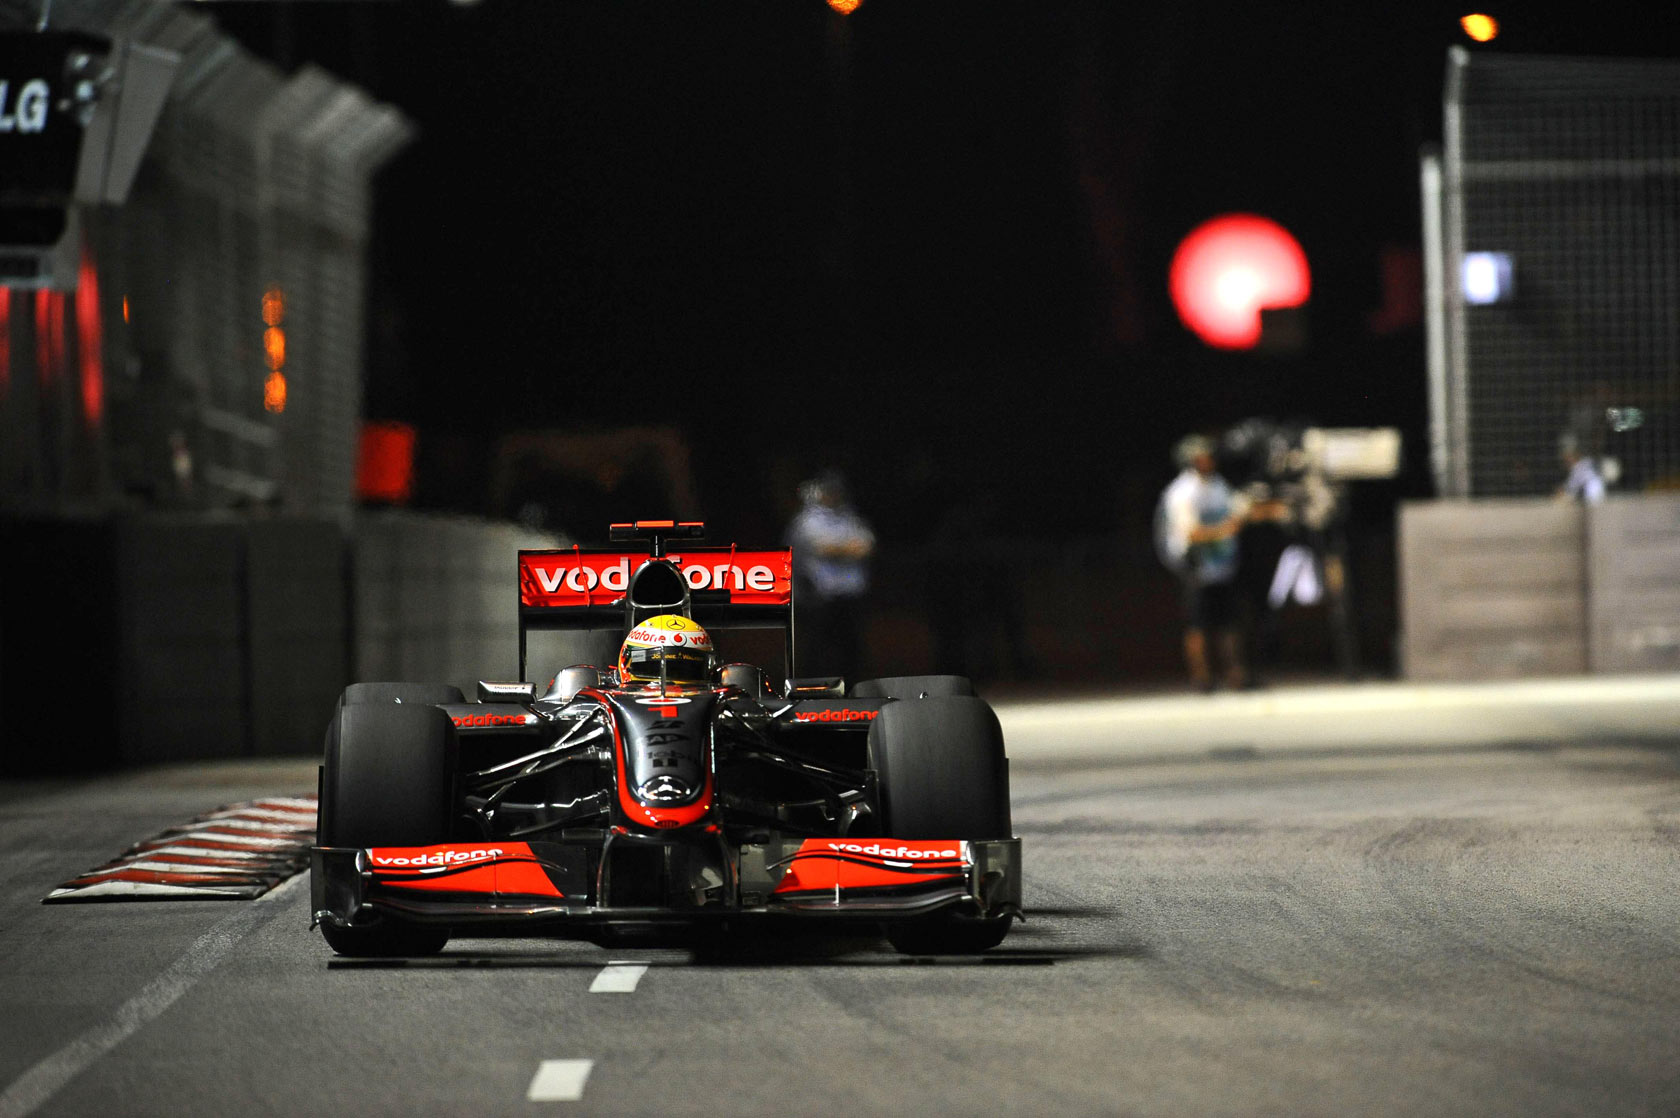 hamilton-mclaren-mercedes-mp4-24-singapore-gp-f1-2009